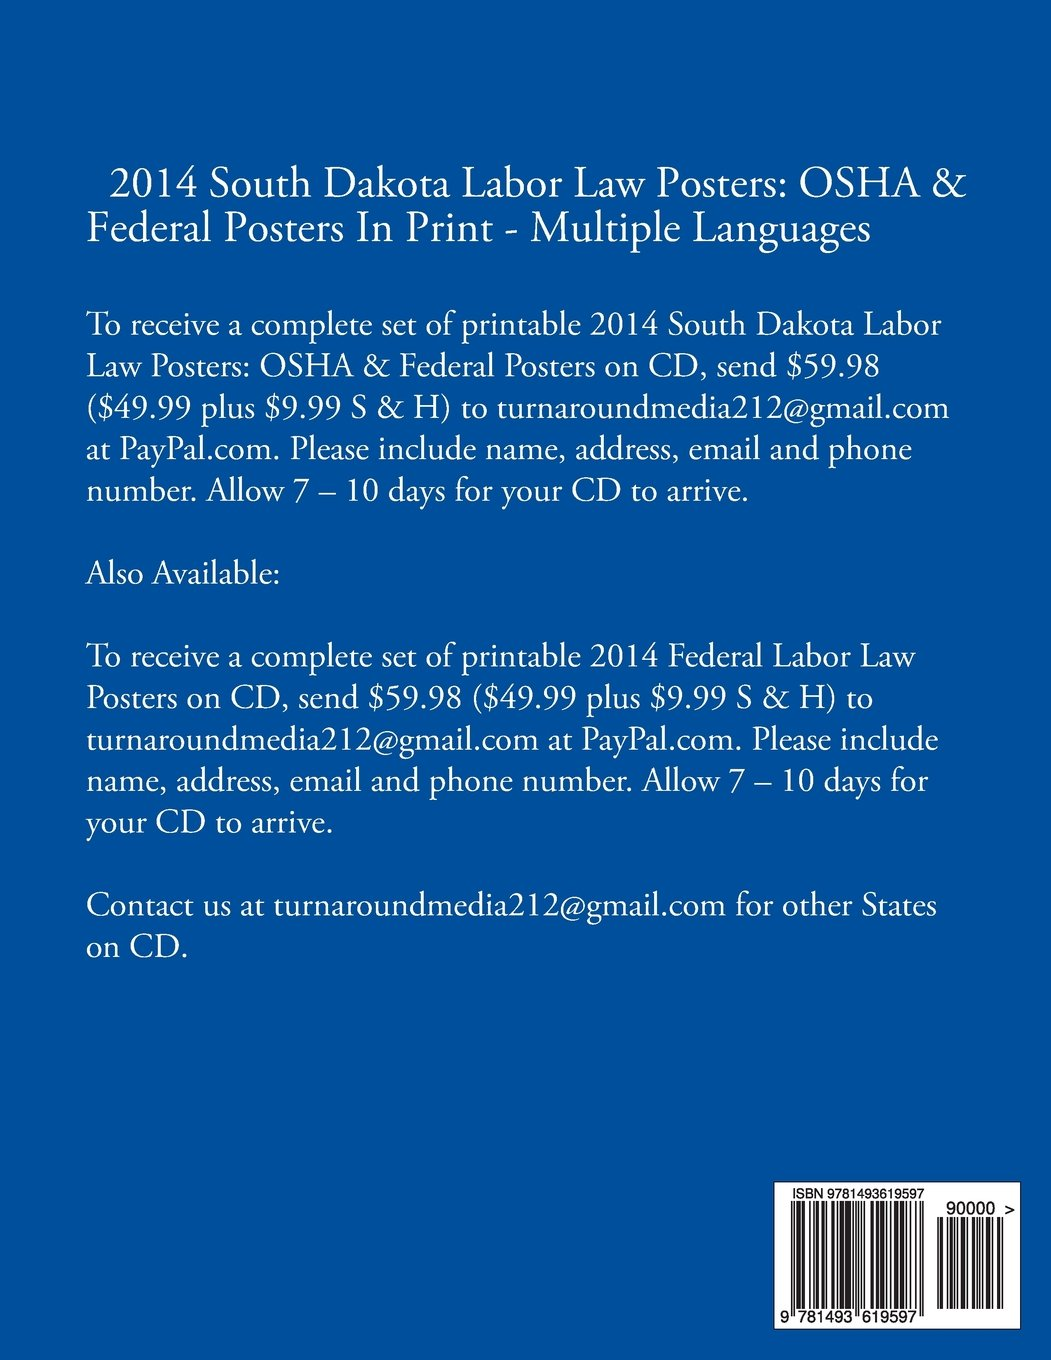 2014 South Dakota Labor Law Posters: OSHA & Federal Posters In Print - Multiple Languages (Multilingual Edition) by CreateSpace Independent Publishing Platform